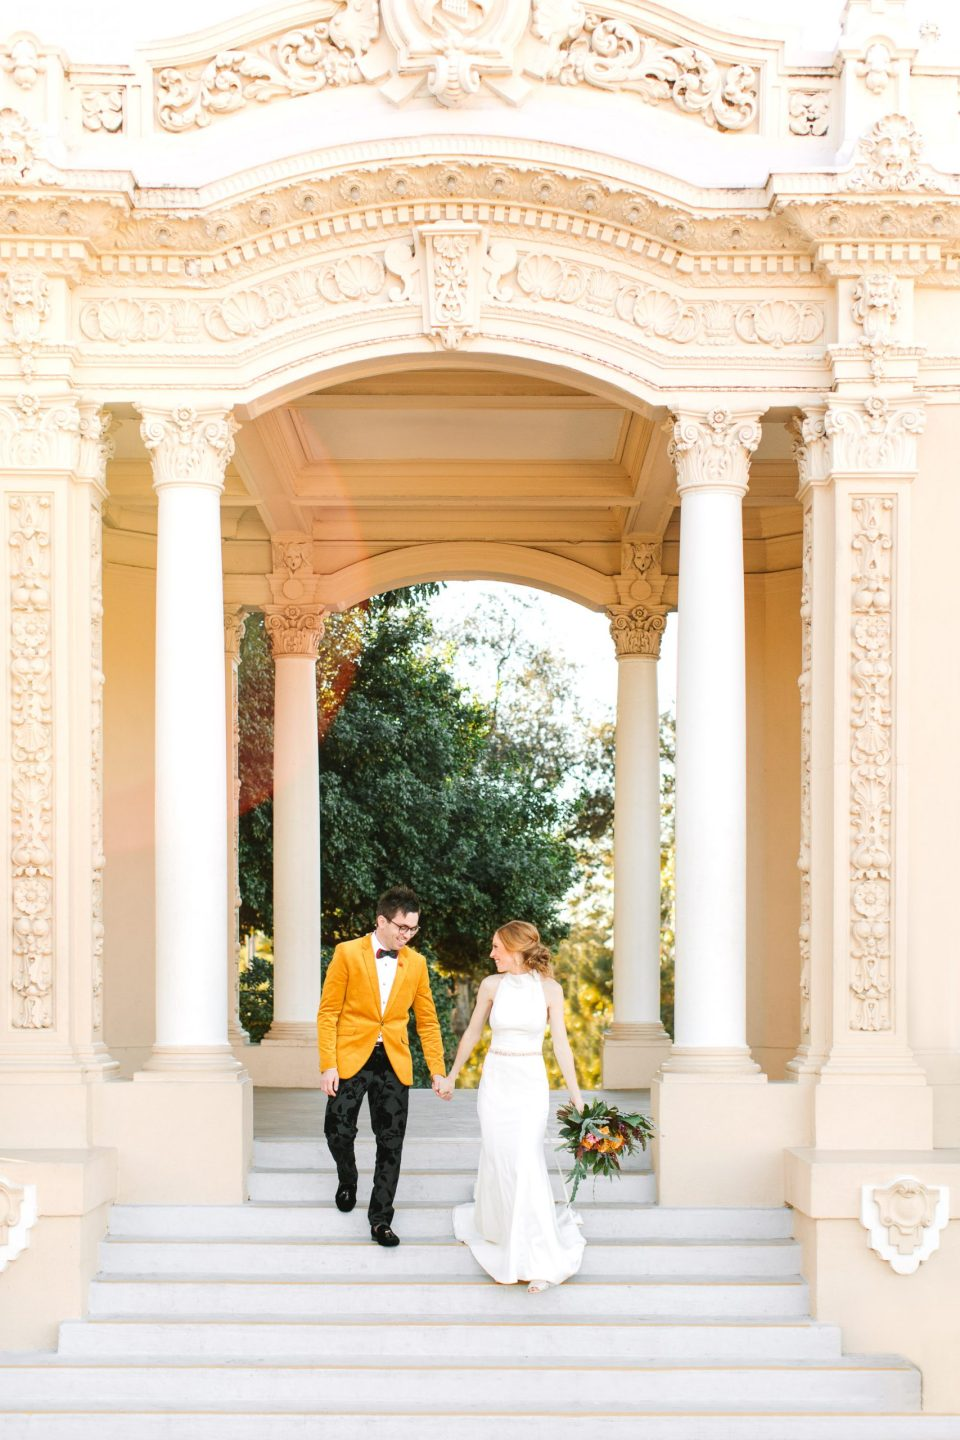 Wedding couple at Spreckels Organ Pavilion in Balboa Park by Mary Costa Photography